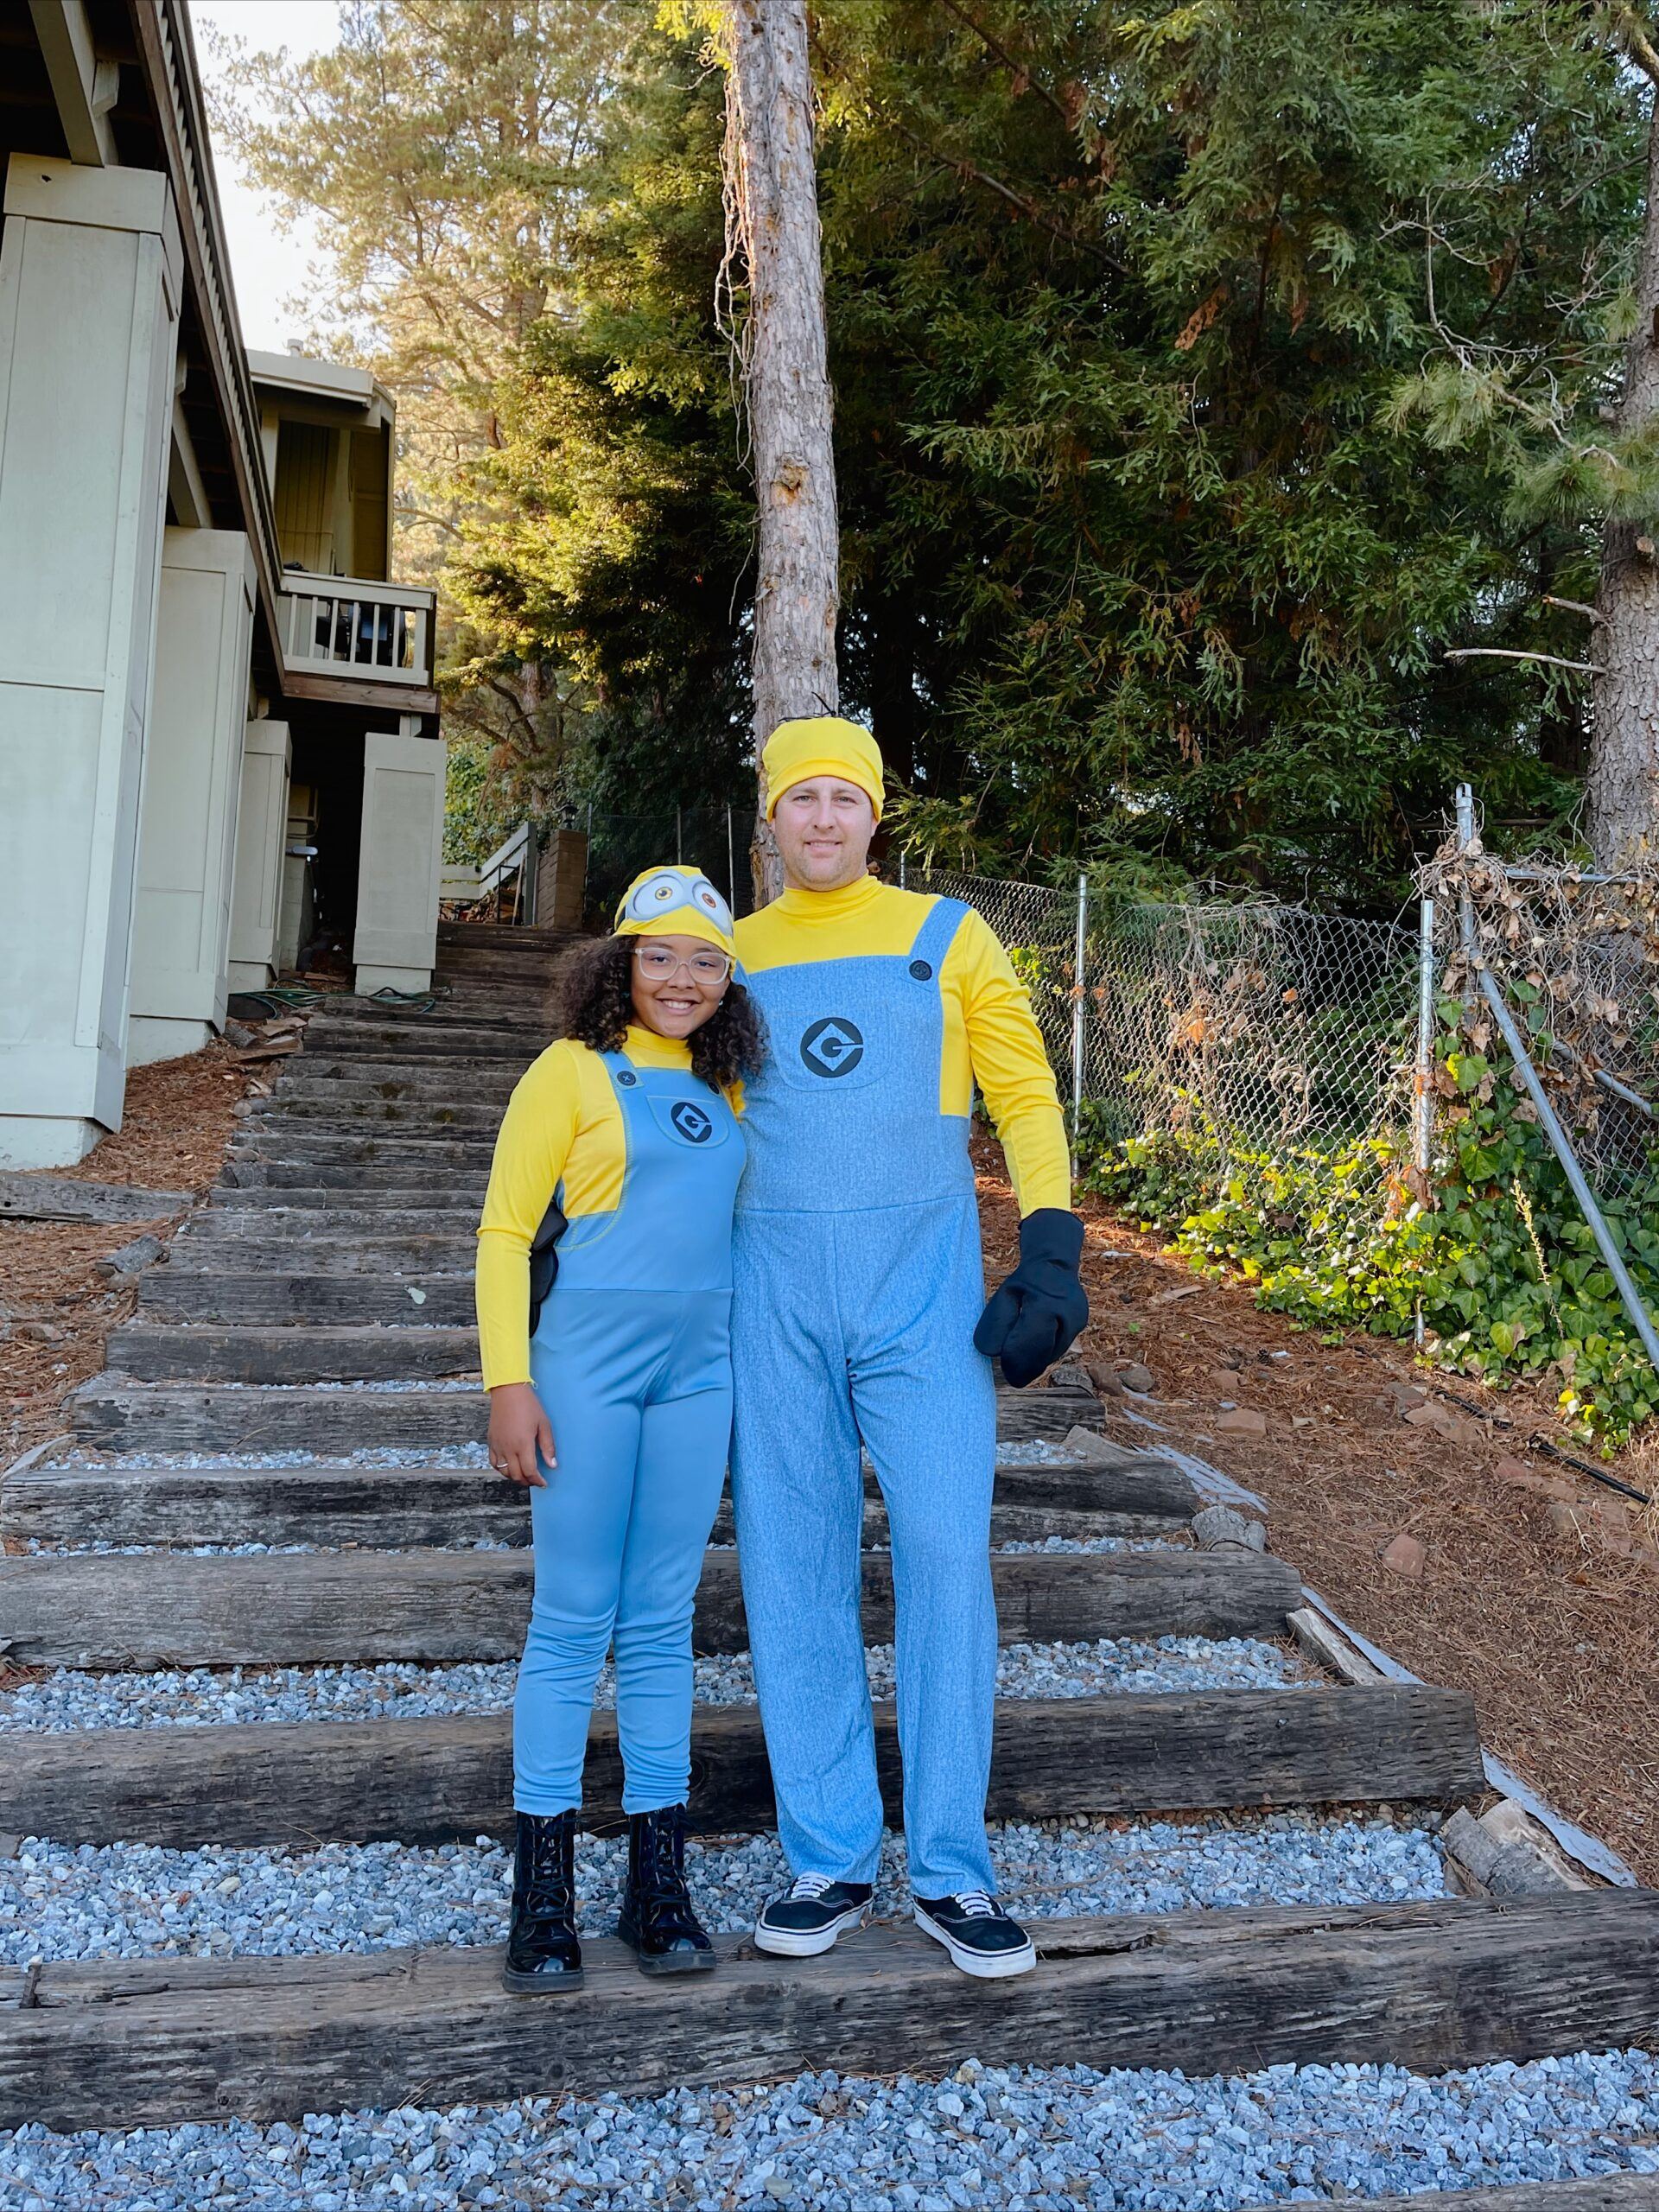 Ruthie Ridley Blog Halloween Costumes For The Family